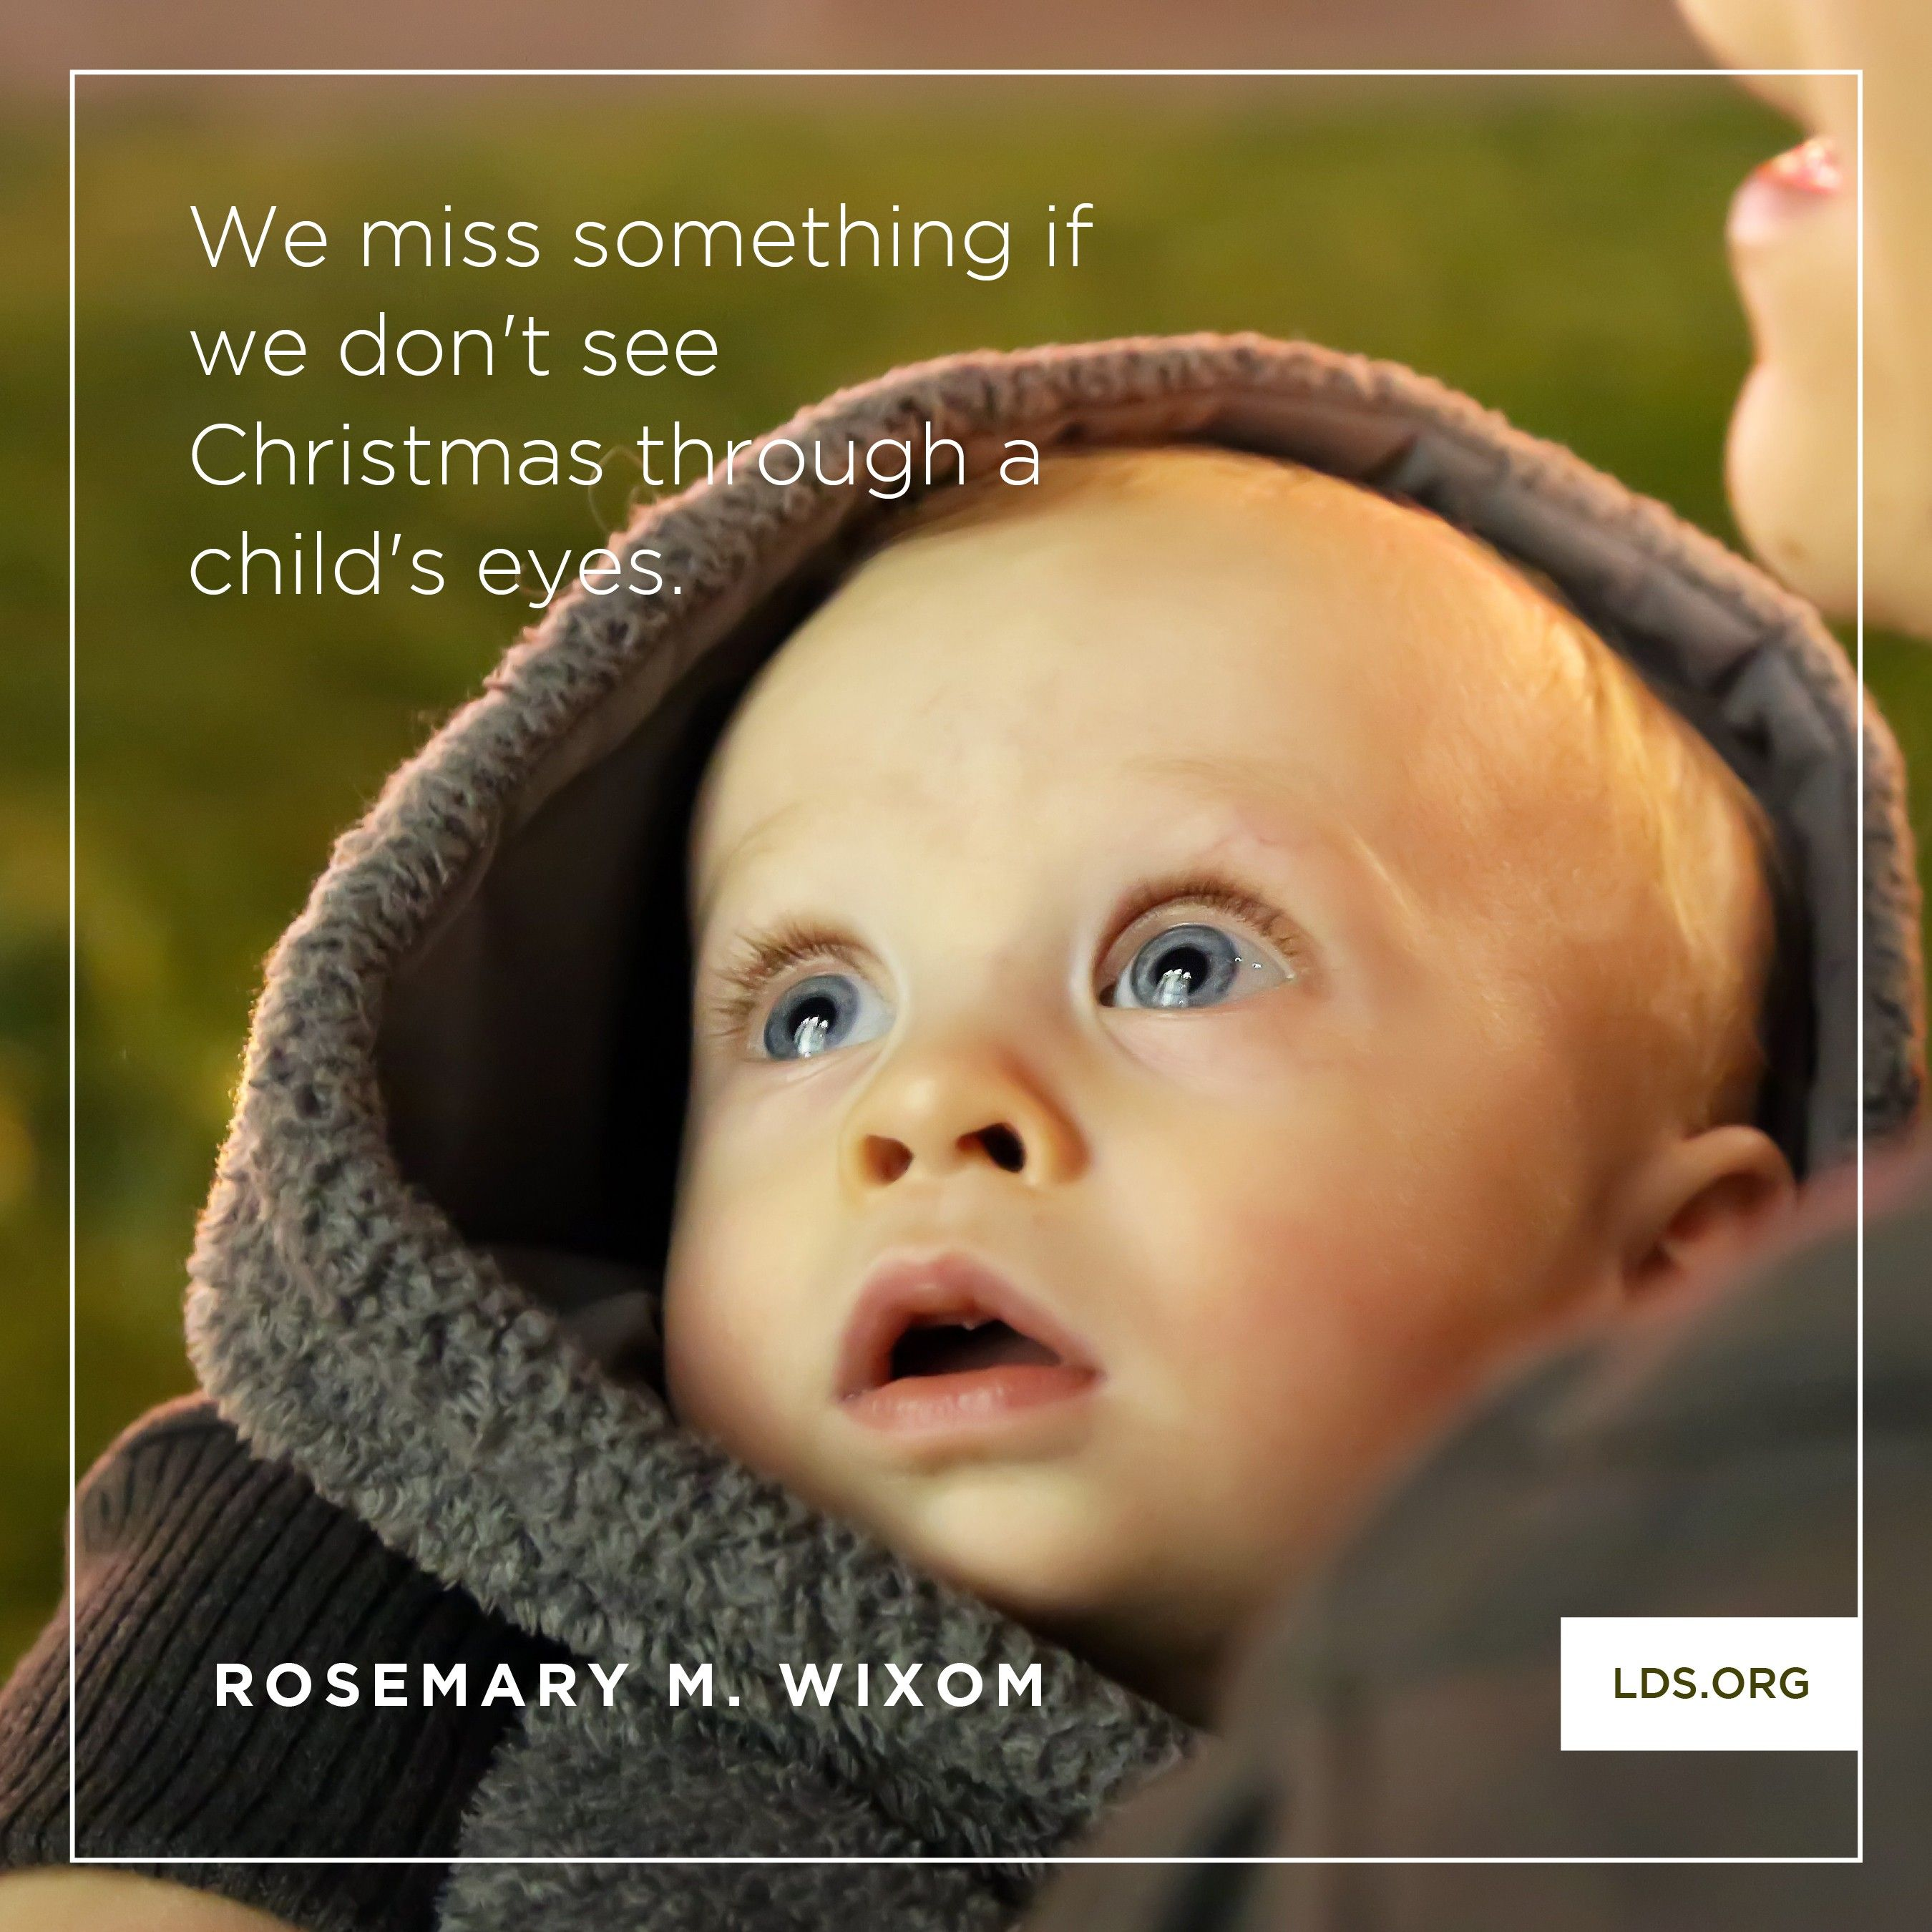 """""""We miss something if we don't see Christmas through a child's eyes.""""—Sister Rosemary M. Wixom, """"What Happened Next?"""""""